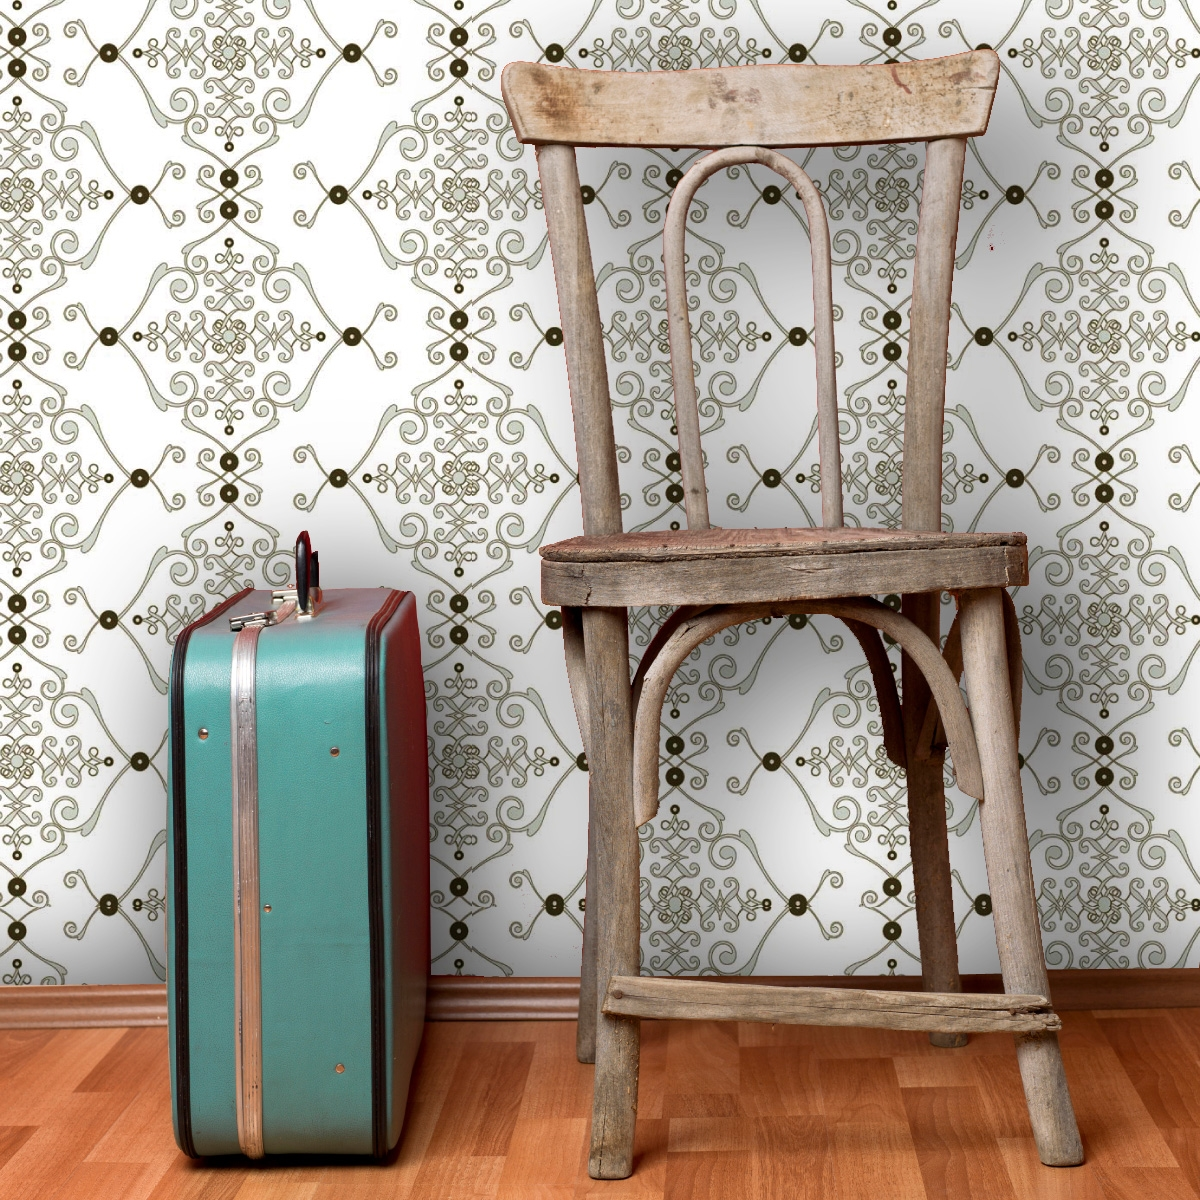 Suitcase-and-Wood-Chair-TORI-frost.jpg